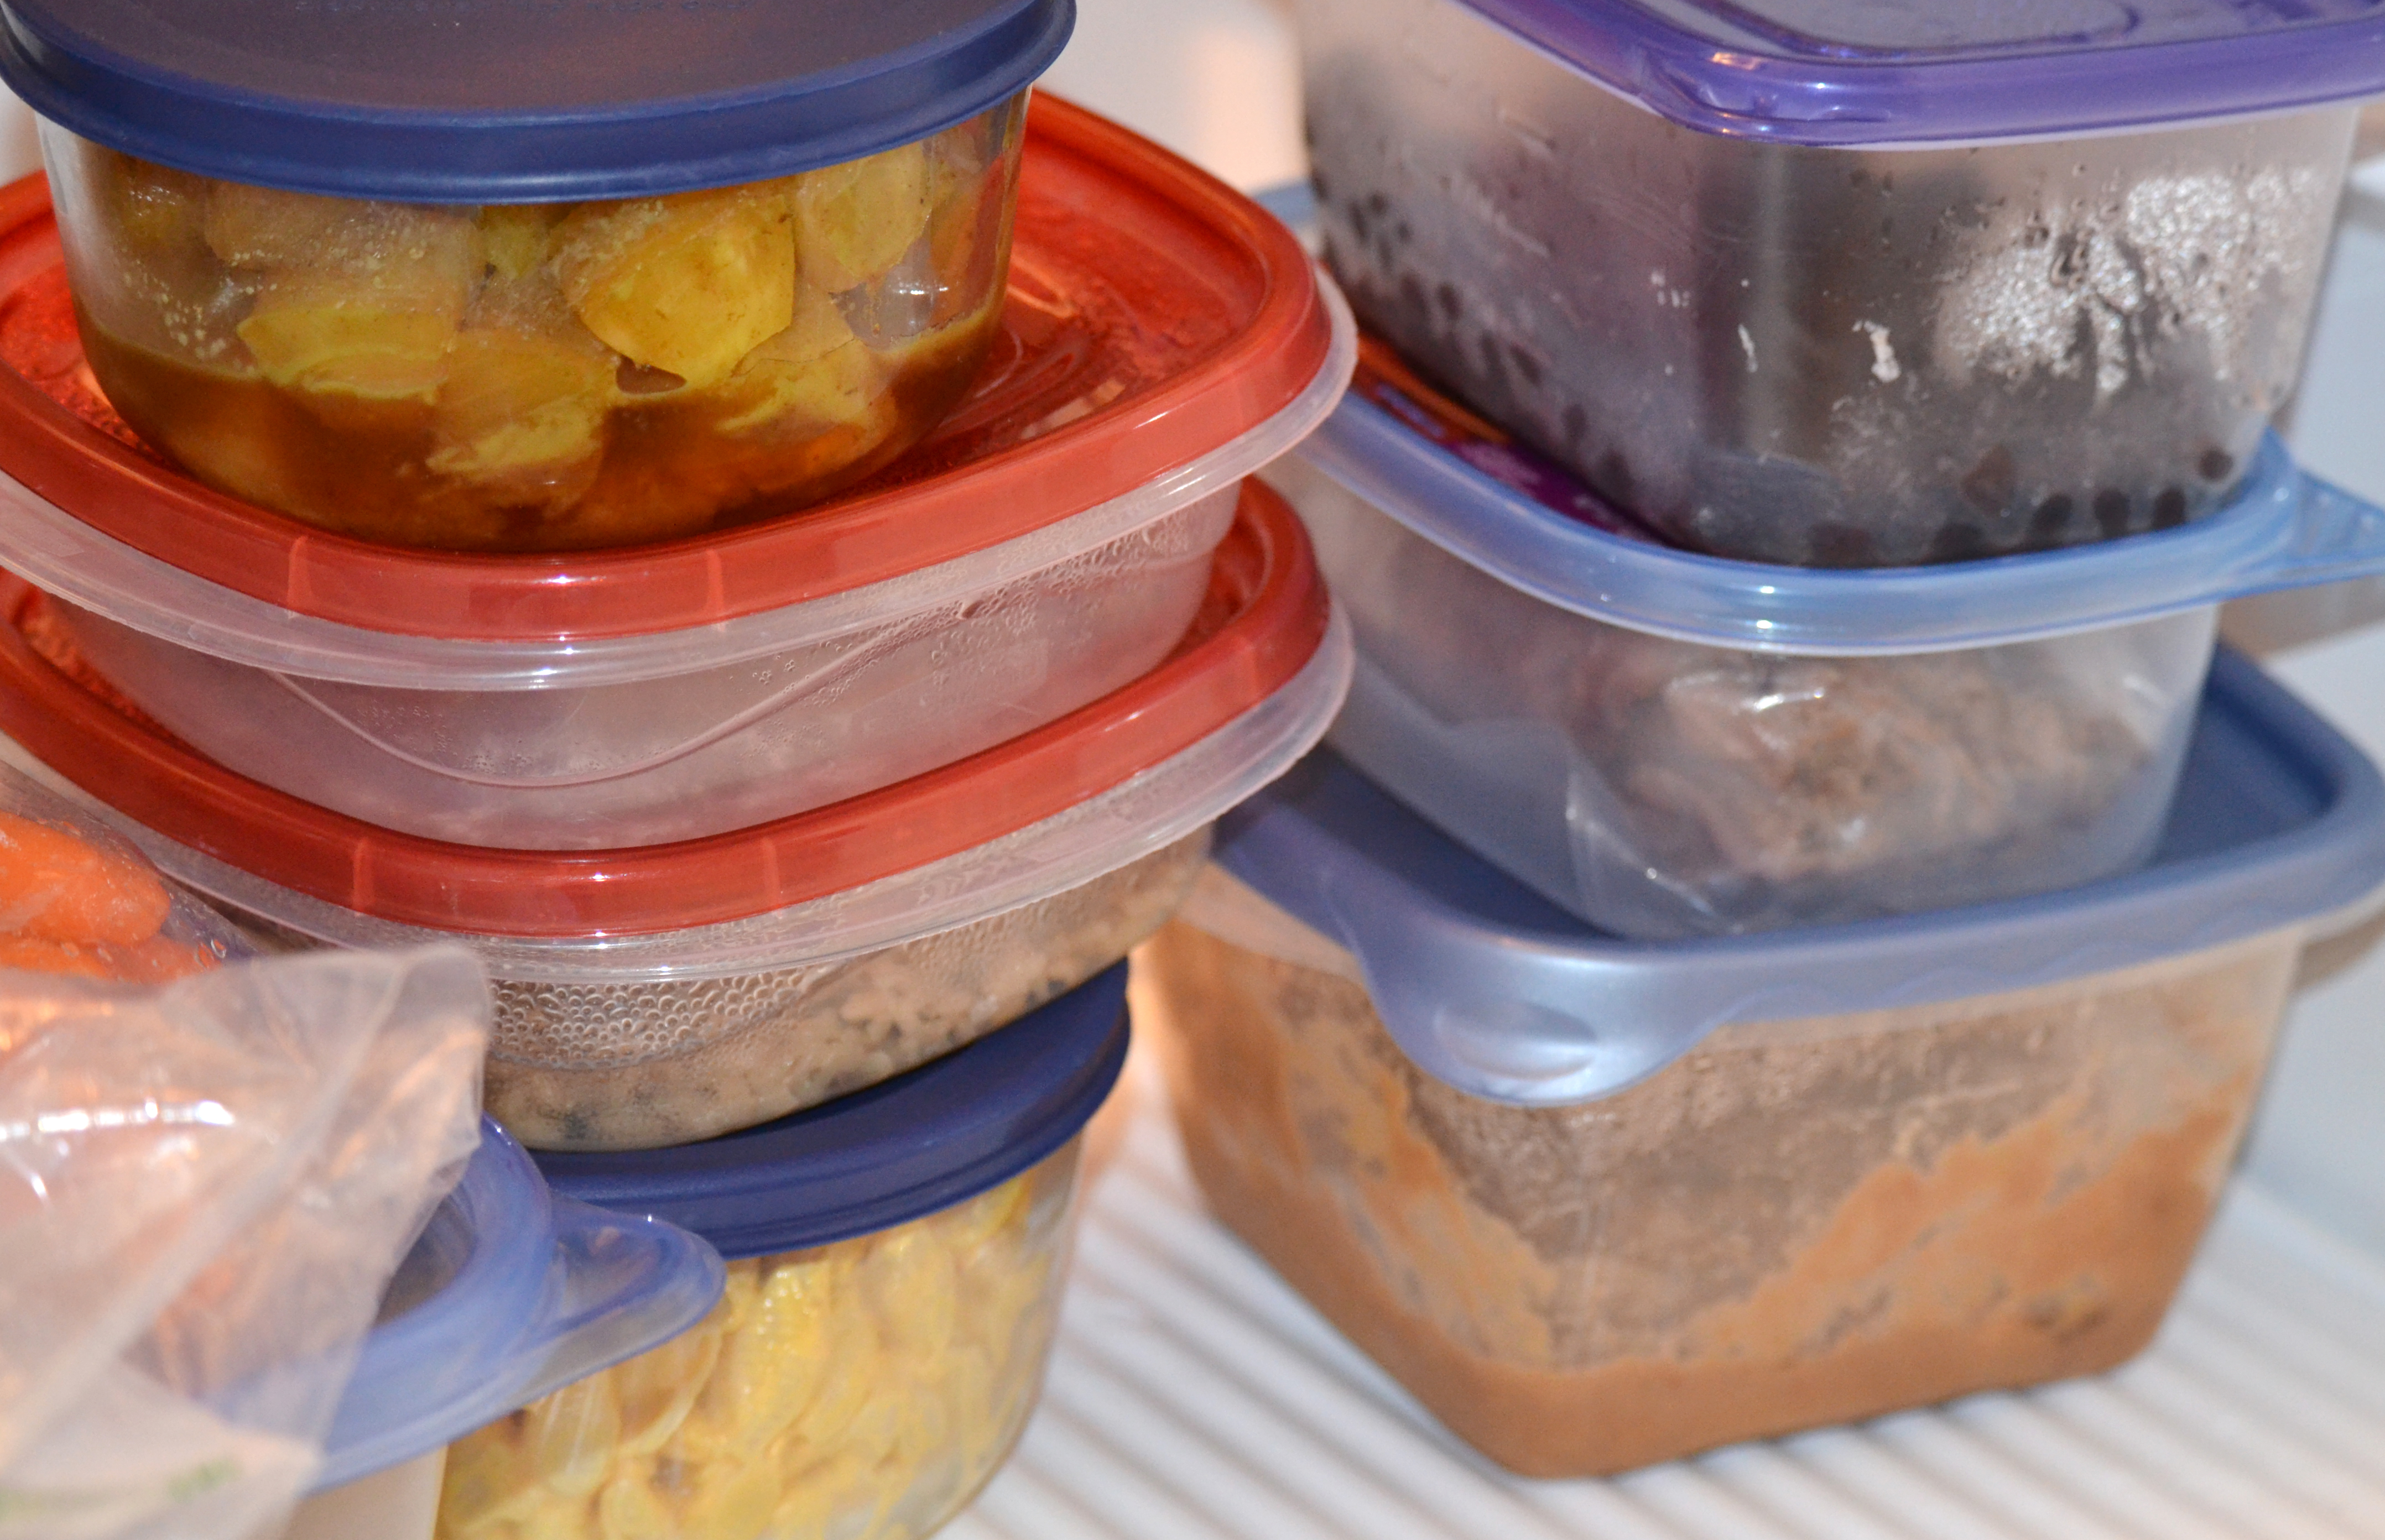 Food safety expert offers tips for safely reheating and Can you put hot food in the refrigerator